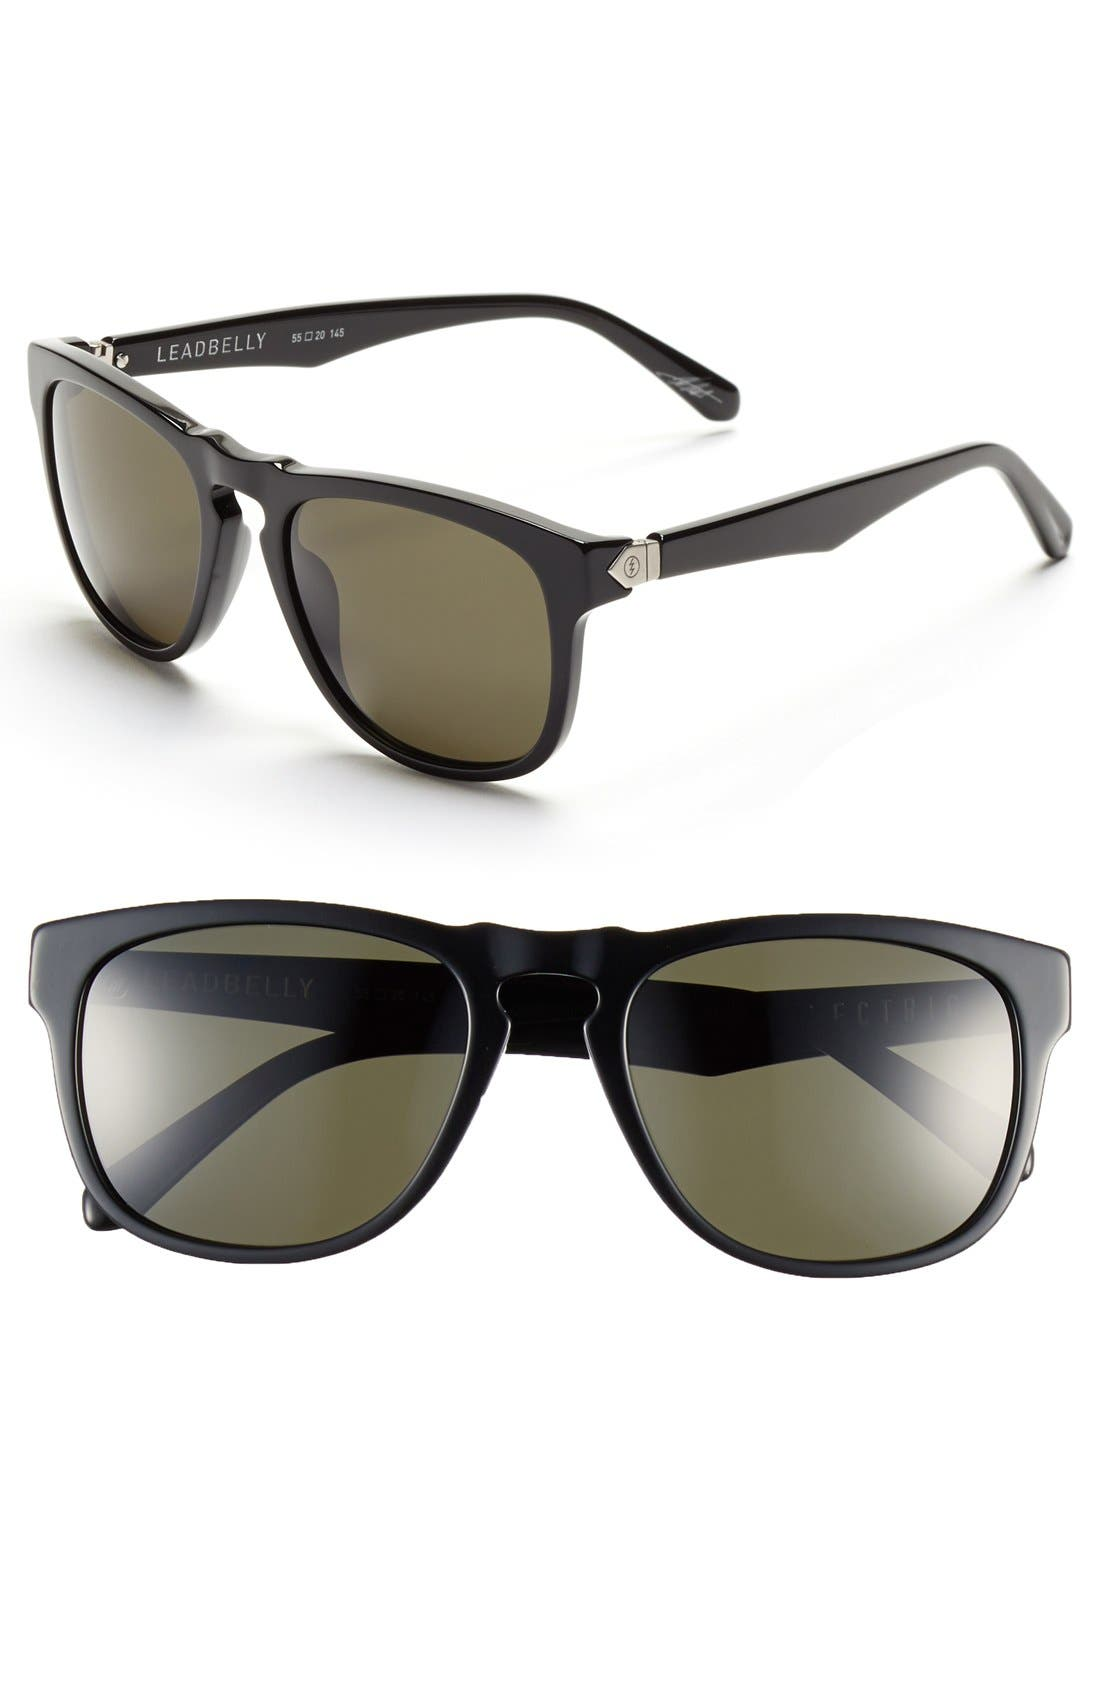 ELECTRIC Leadbelly 55mm Sunglasses